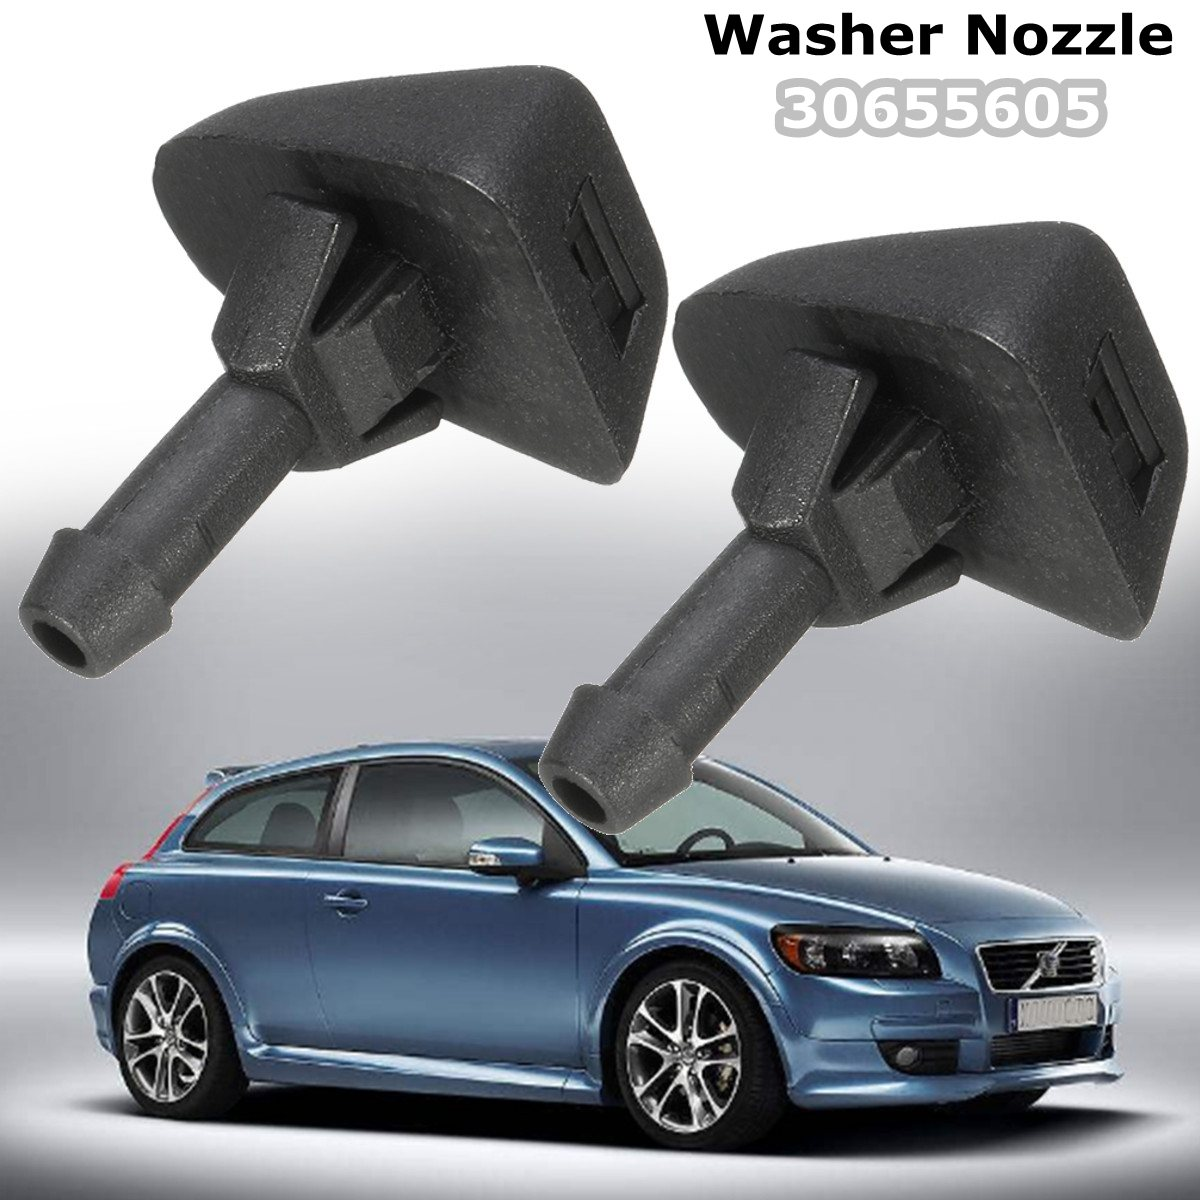 2x Windscreen Washer Nozzle Squirter Jet Windshield Washer Nozzles Jet 30655605 For Volvo <font><b>XC90</b></font> C30 C70 S image